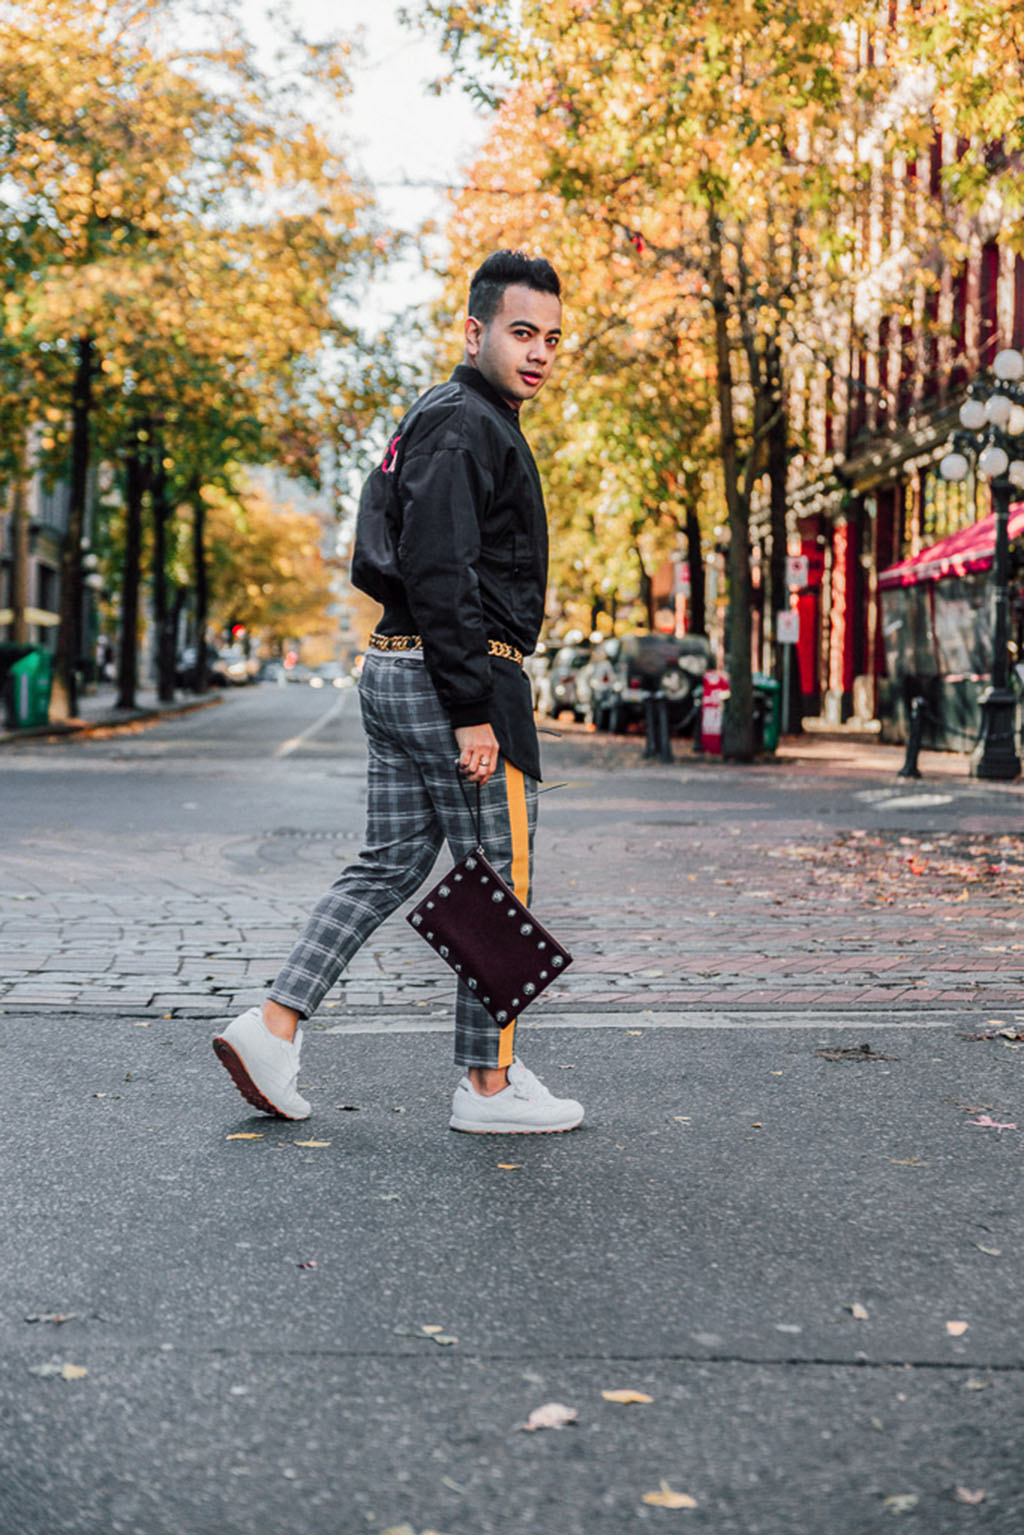 Influencer_Jonathan Waiching Ho_Toronto Fashion Blogger_Vancouver Fashion Blogger_HMoschino_OOTD in Vancouver Top Influencer_3